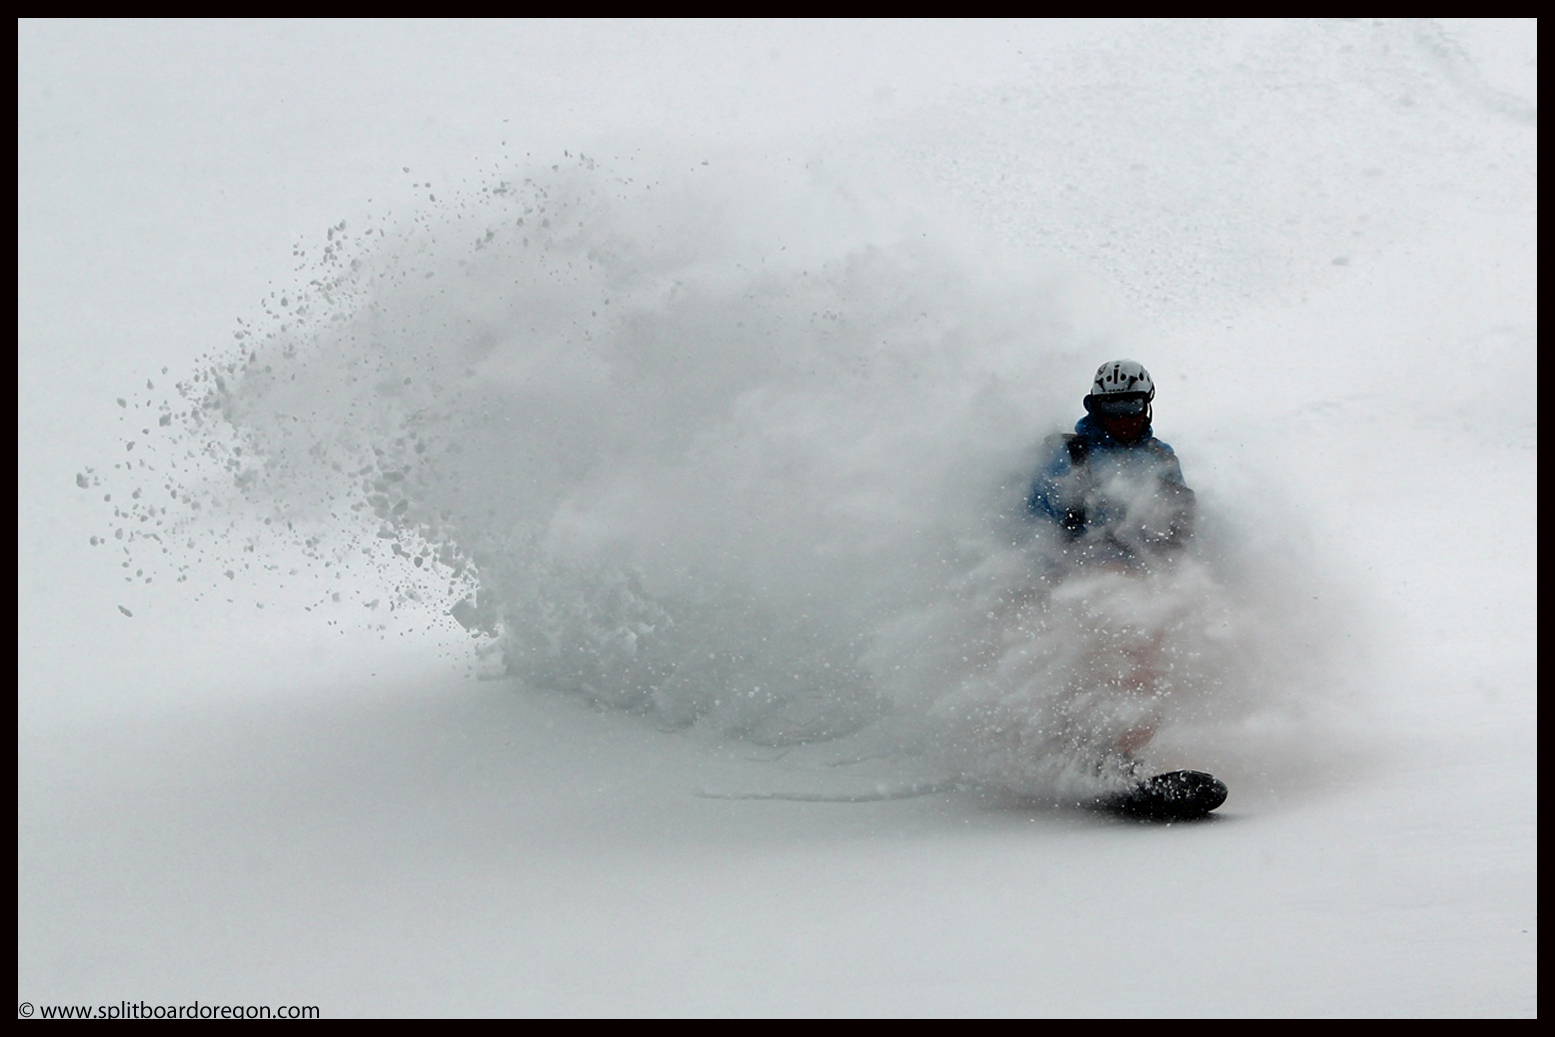 Matt loving the return to winter pow pow